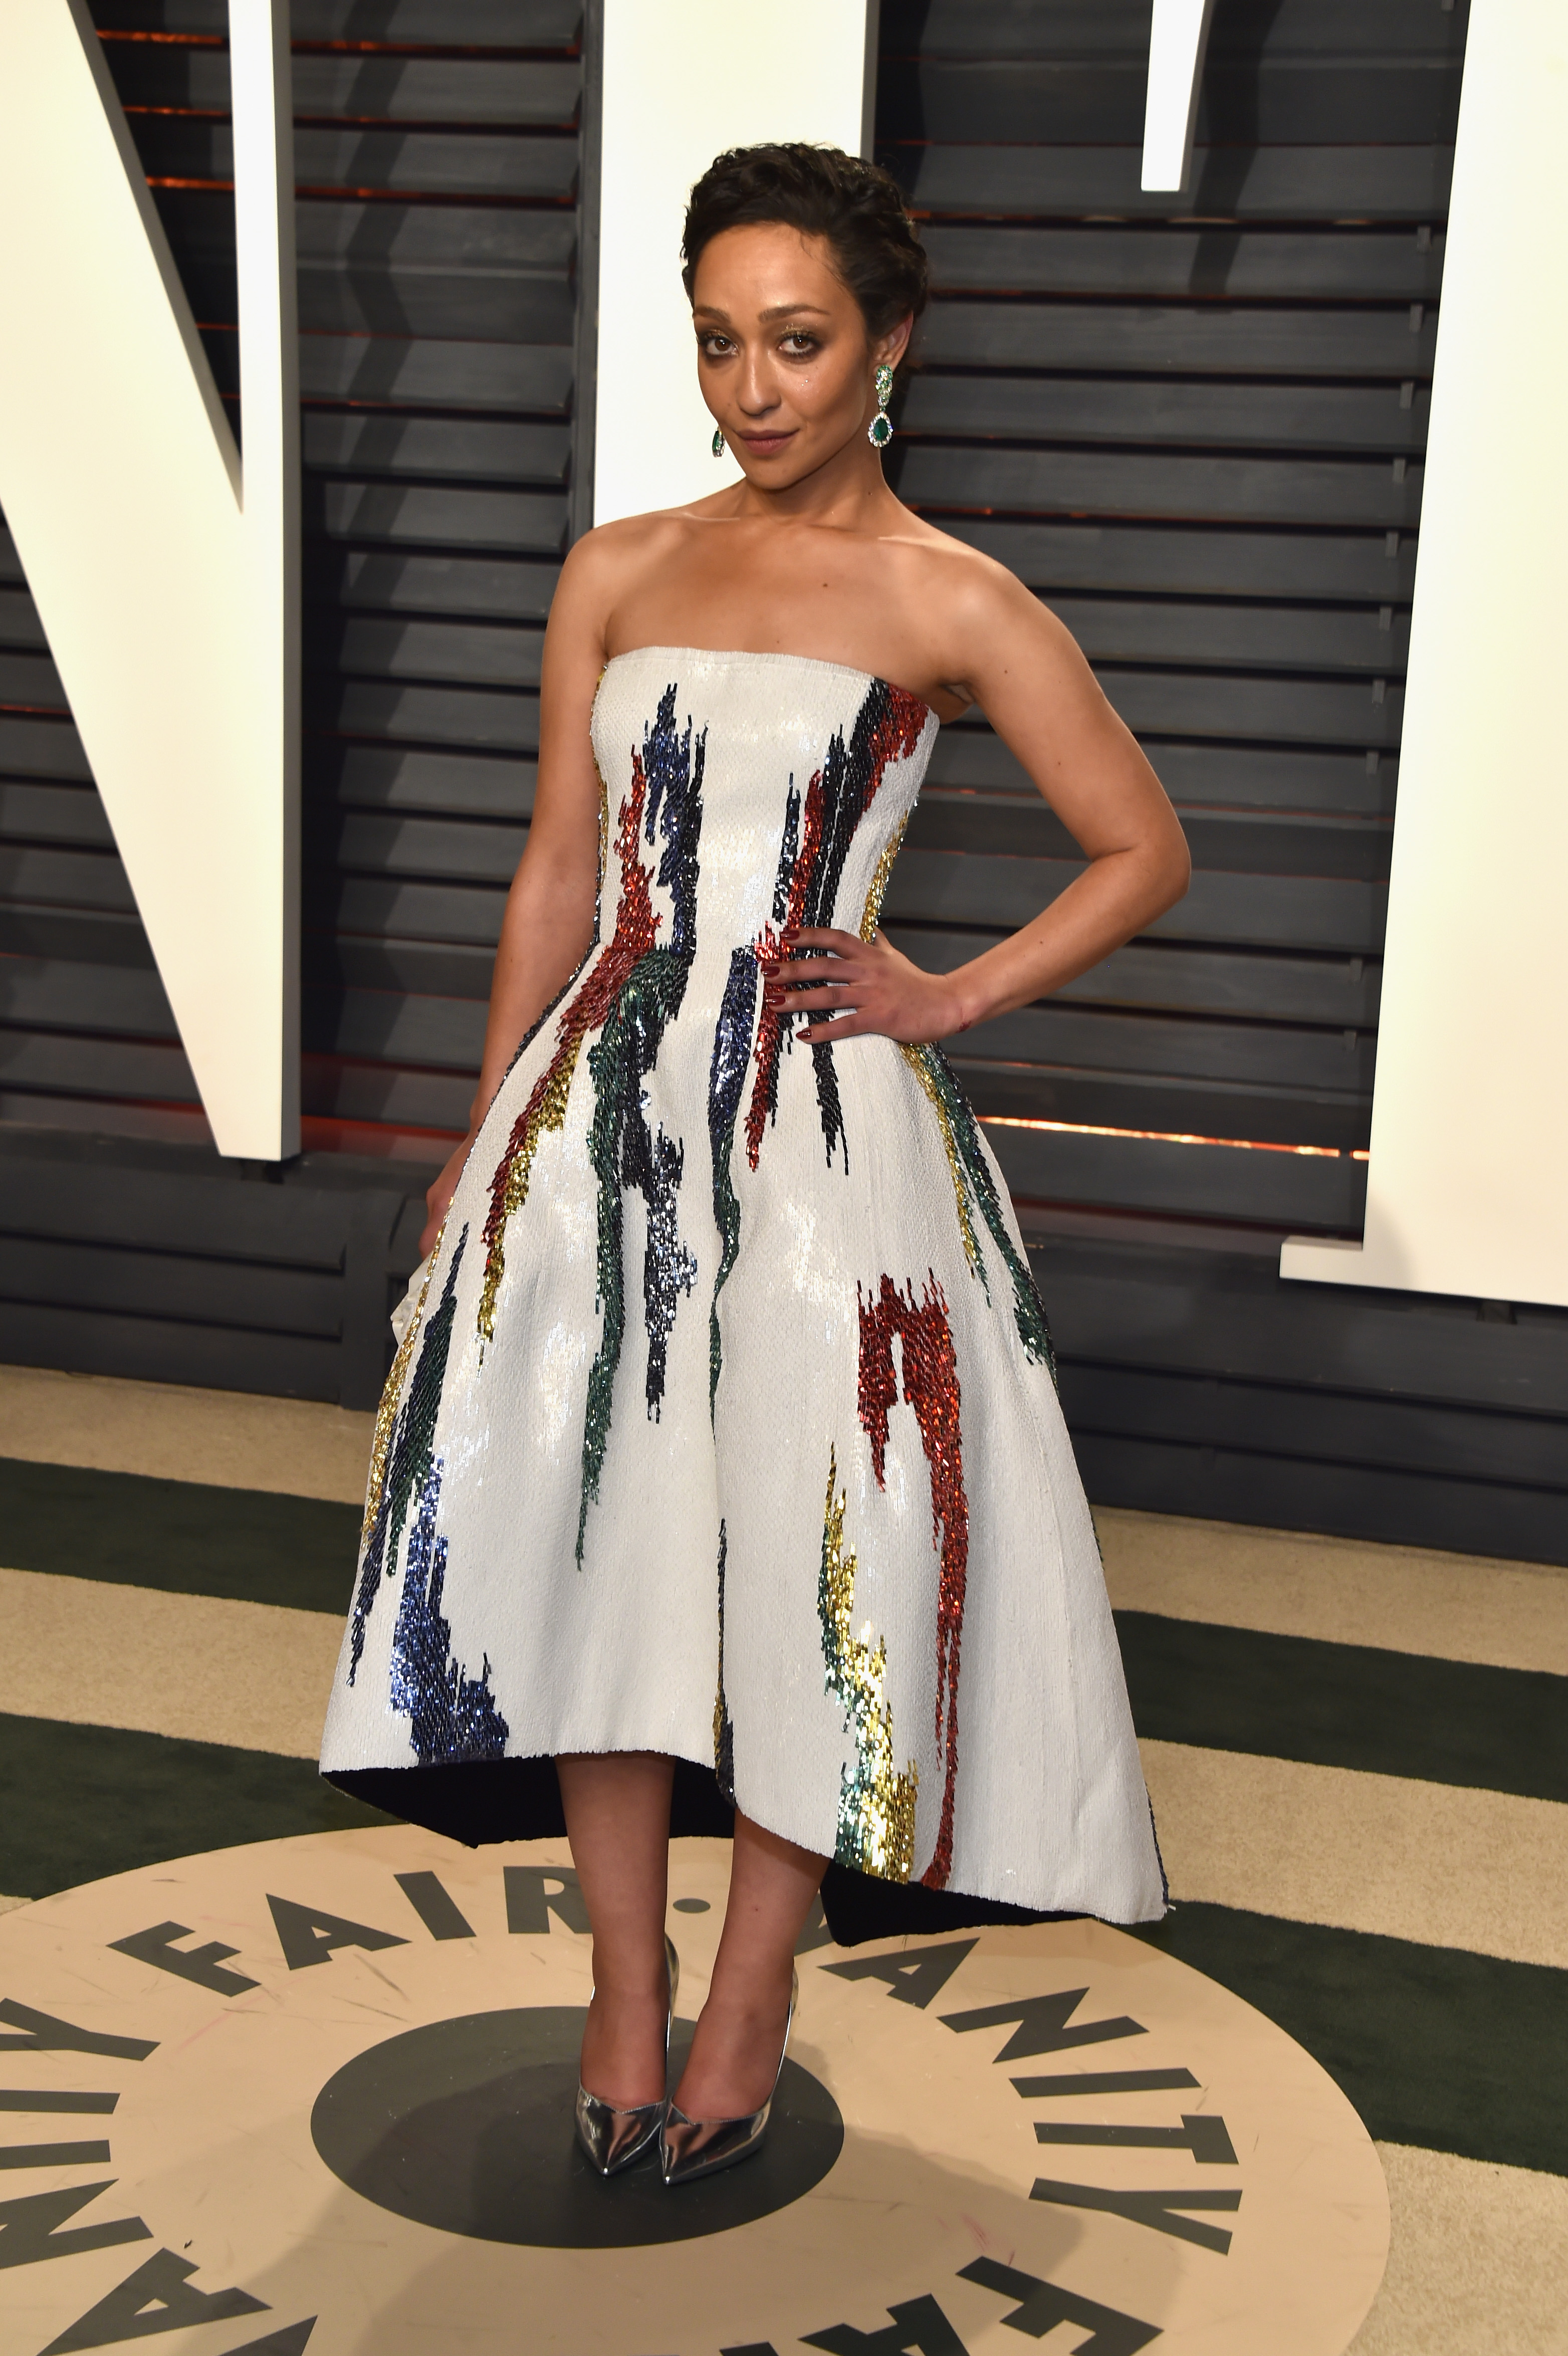 The Best Looks from the Vanity Fair Oscar Party - Daily Front Row